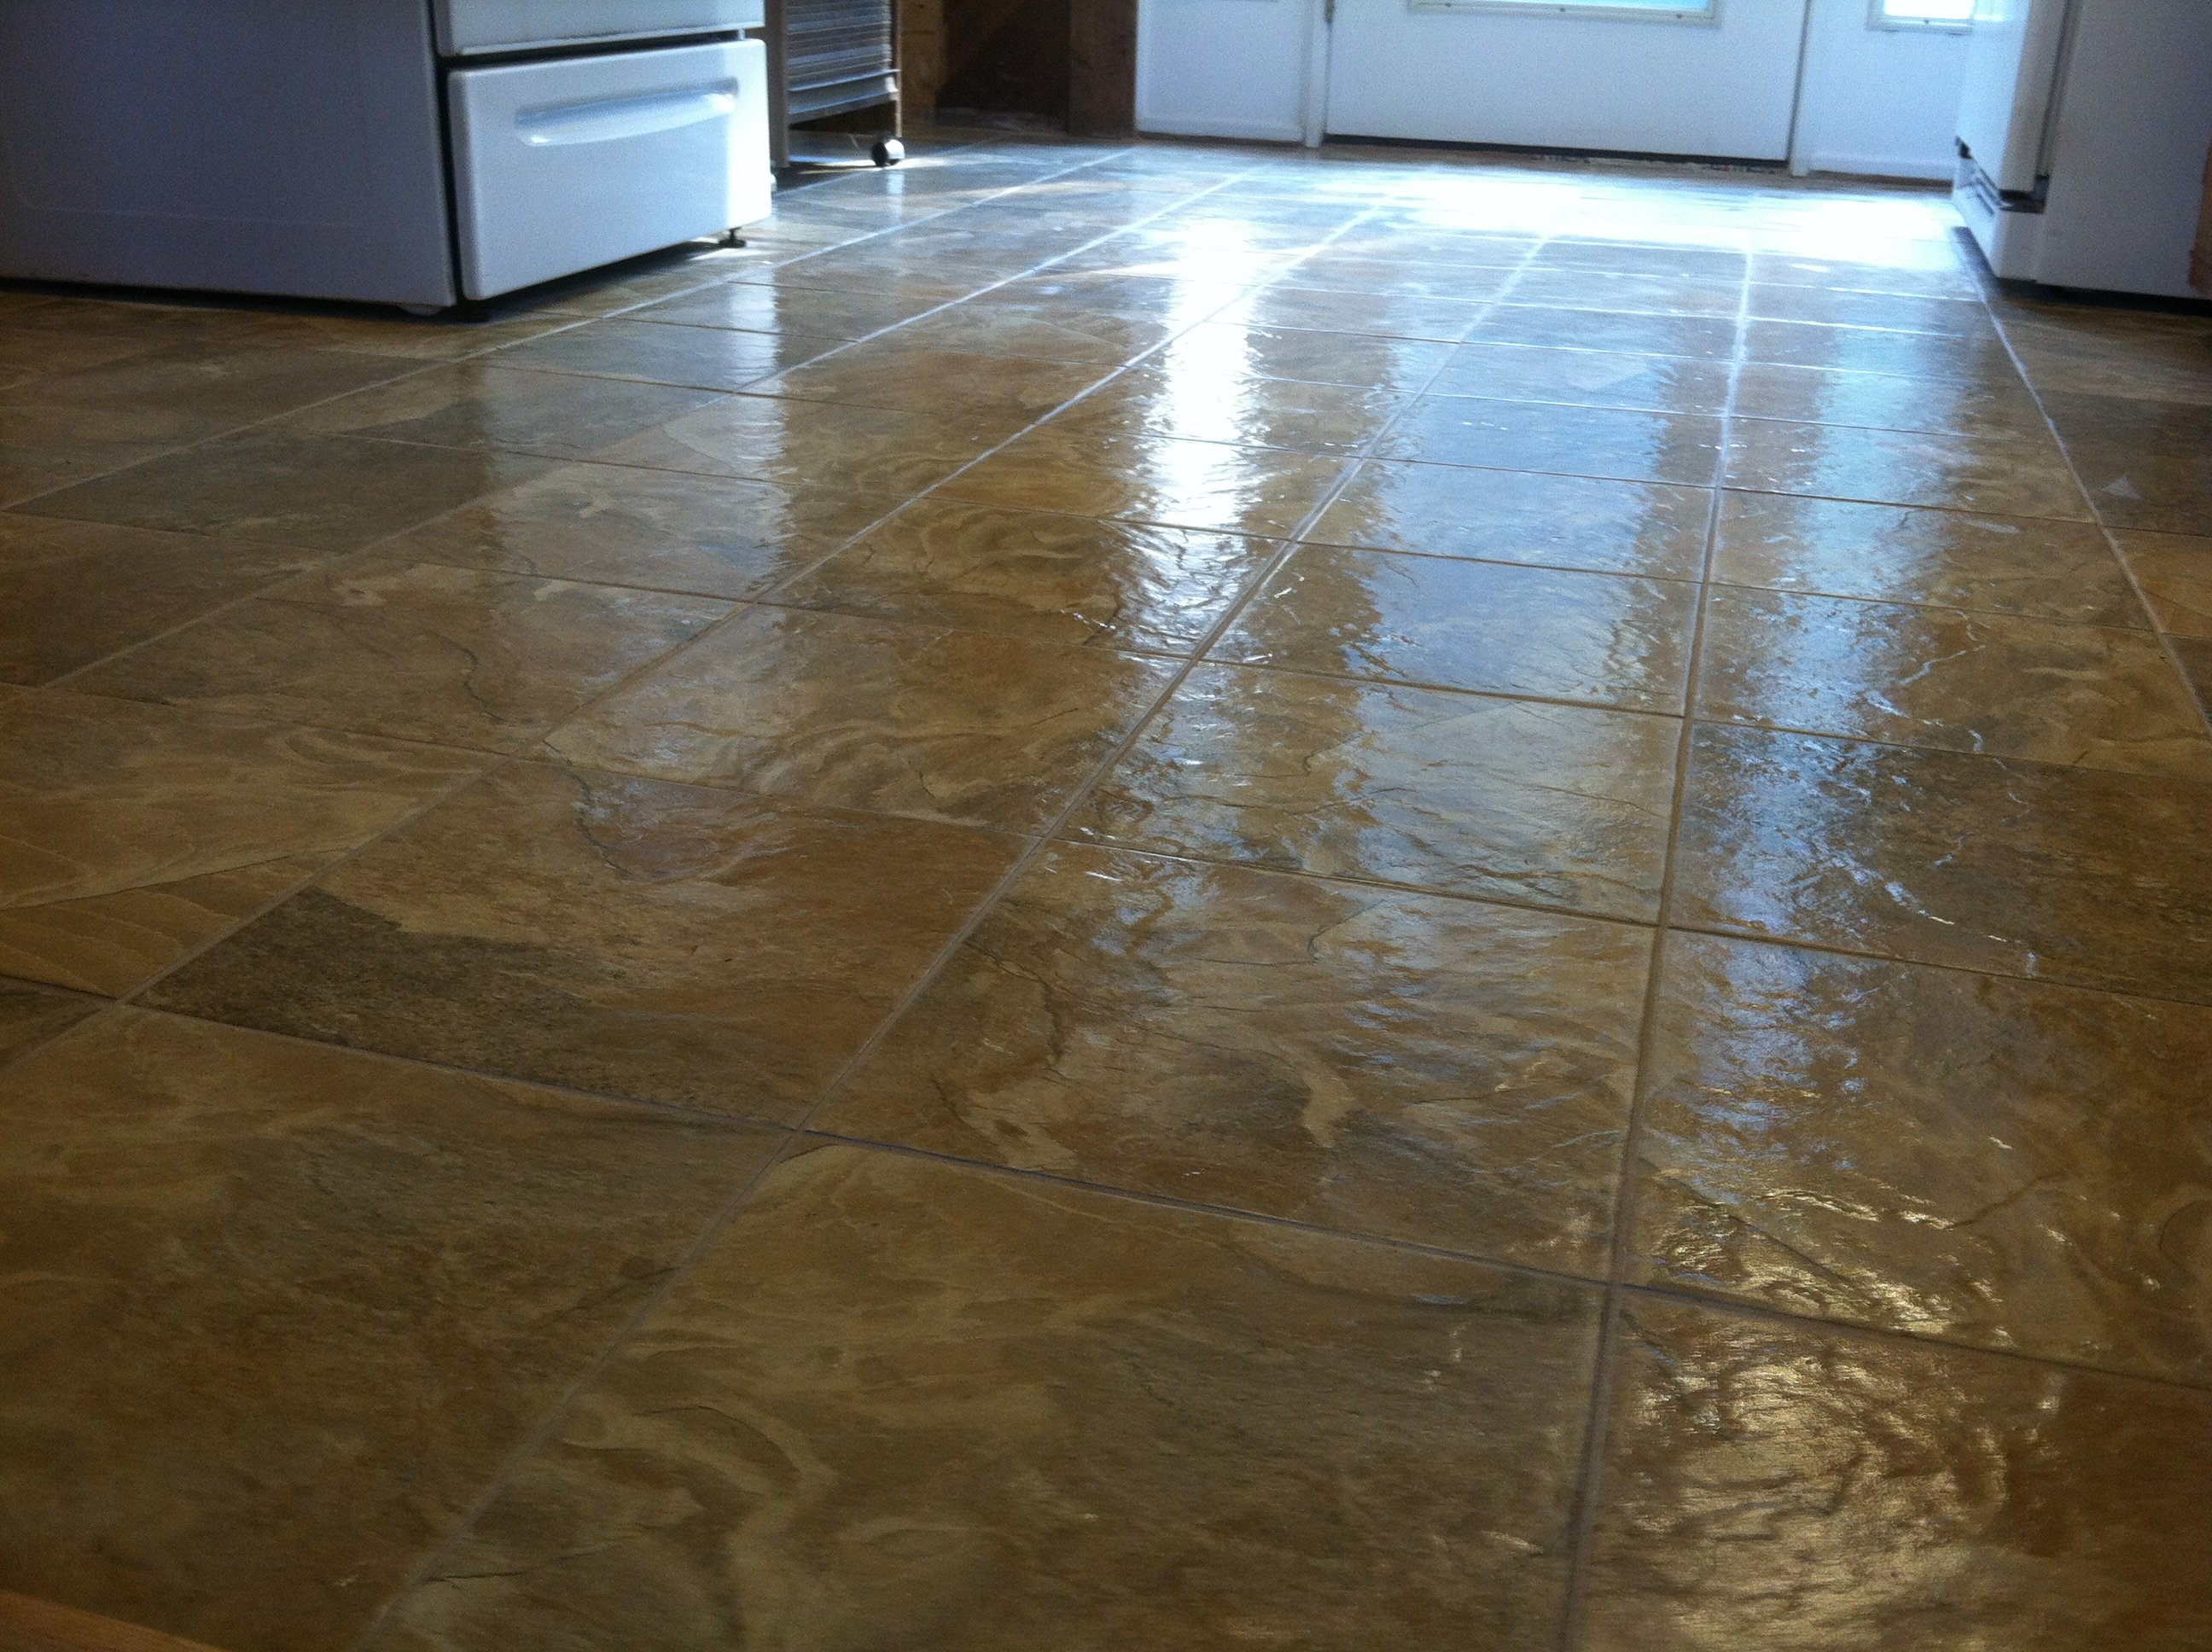 Installing linoleum flooring is it worth it homeadvisor for Kitchen linoleum tiles